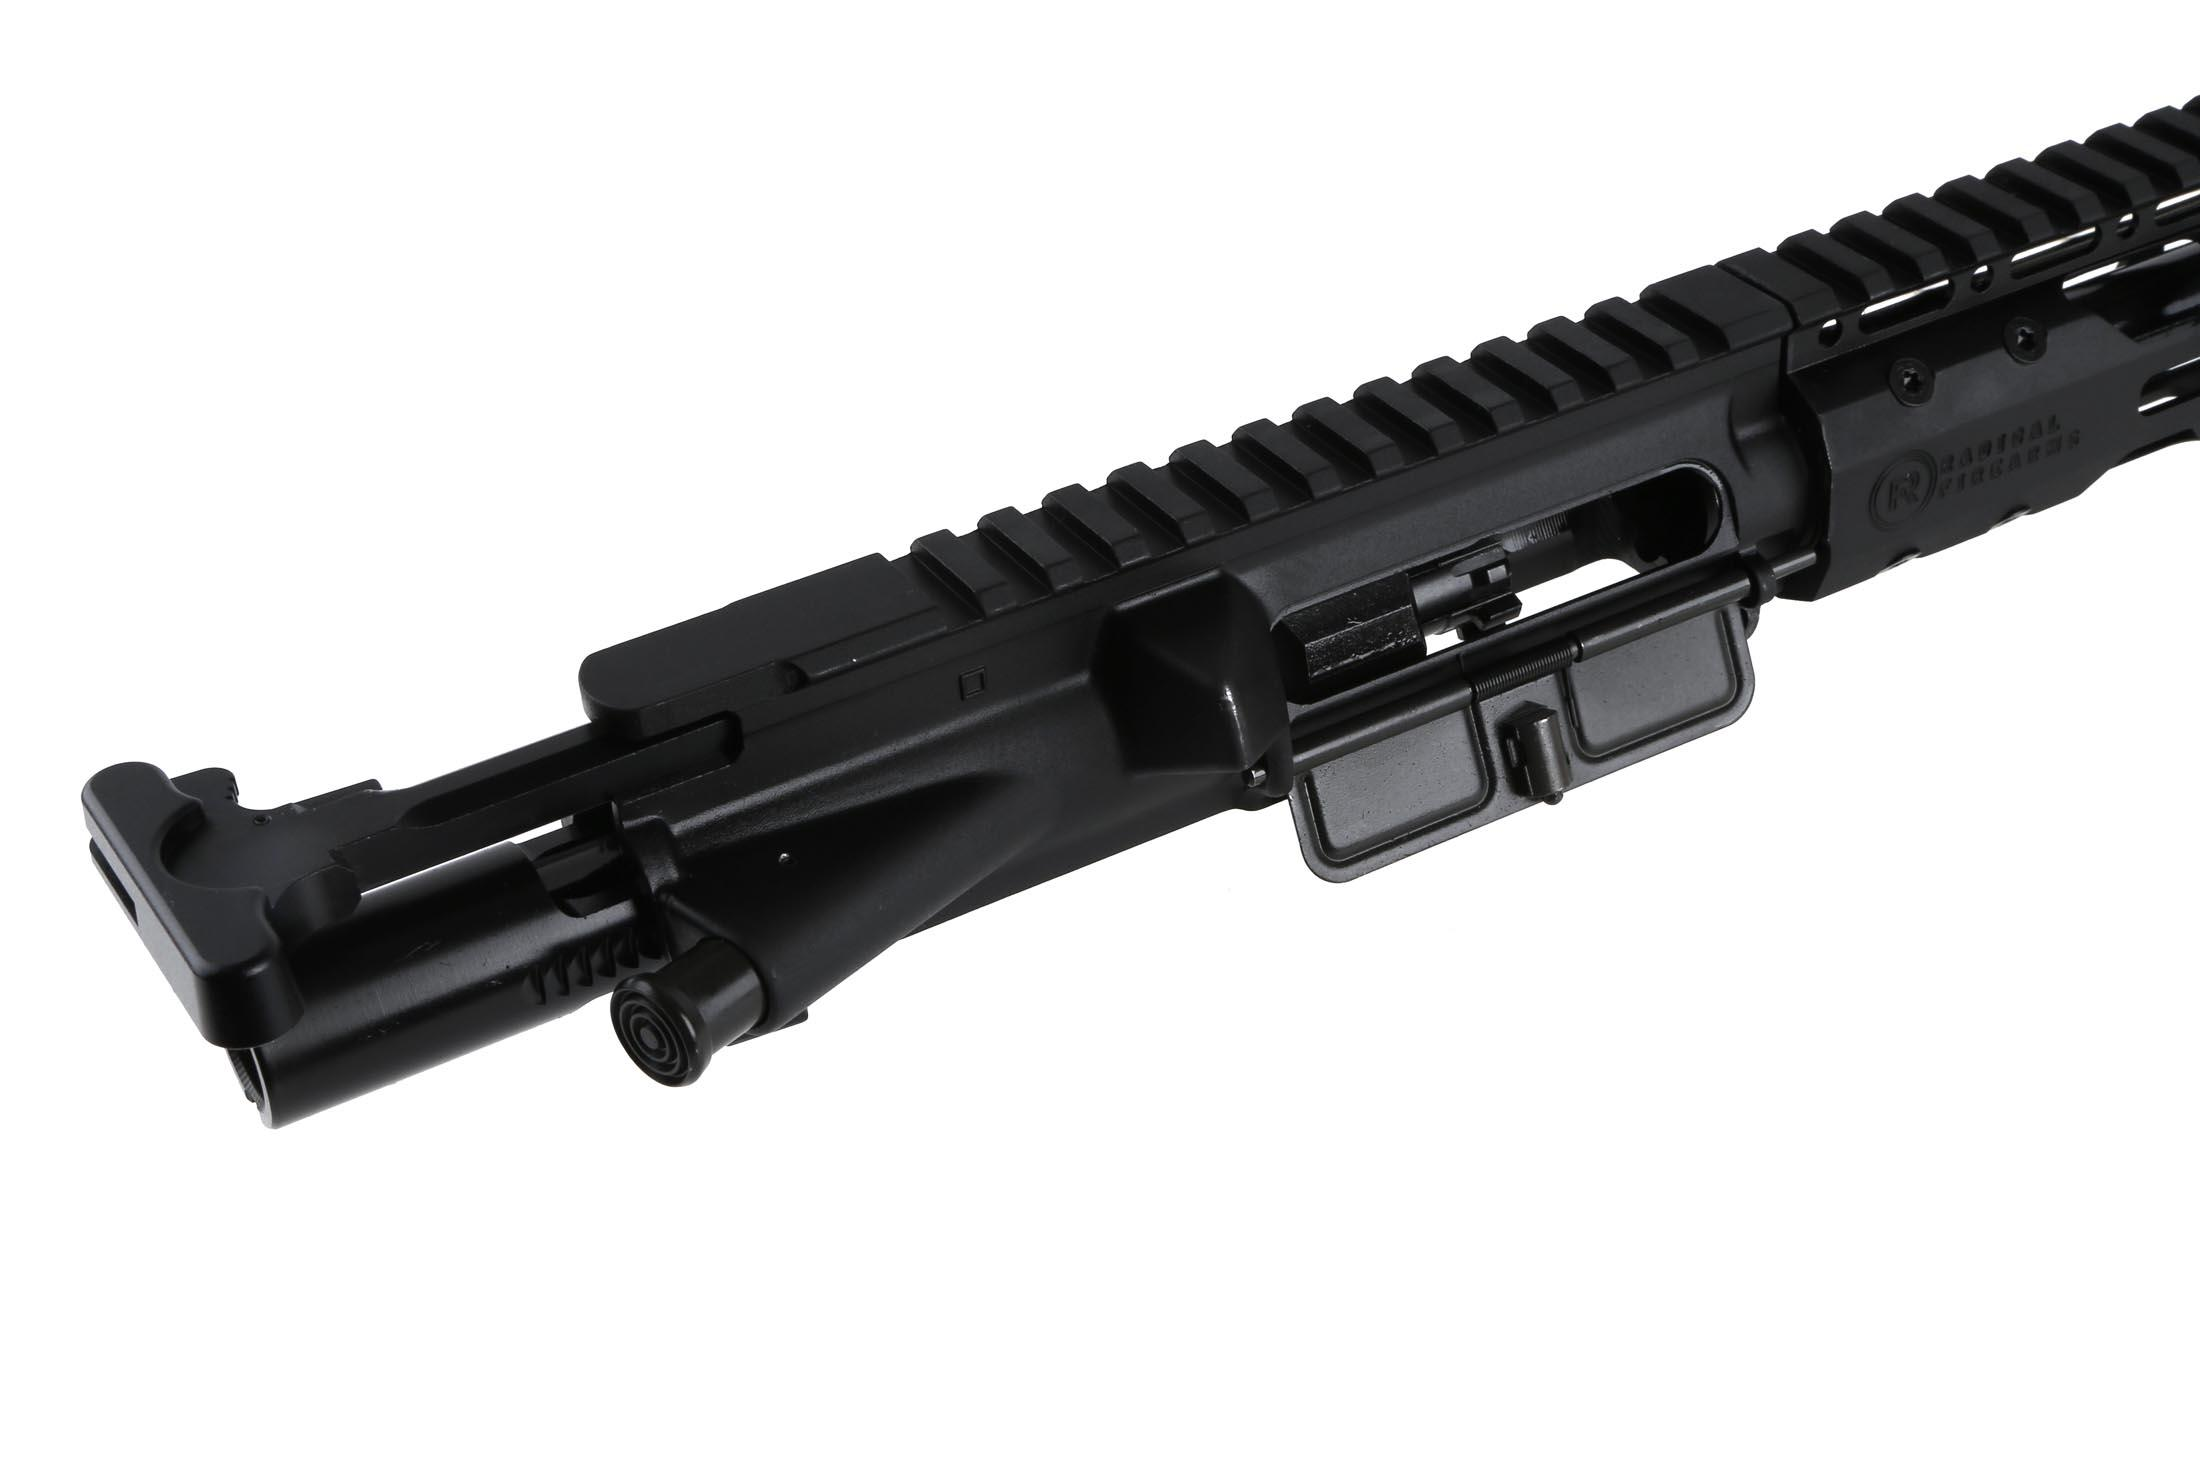 The Radical Firearms 5.56 complete upper comes with bolt carrier group and charging handle